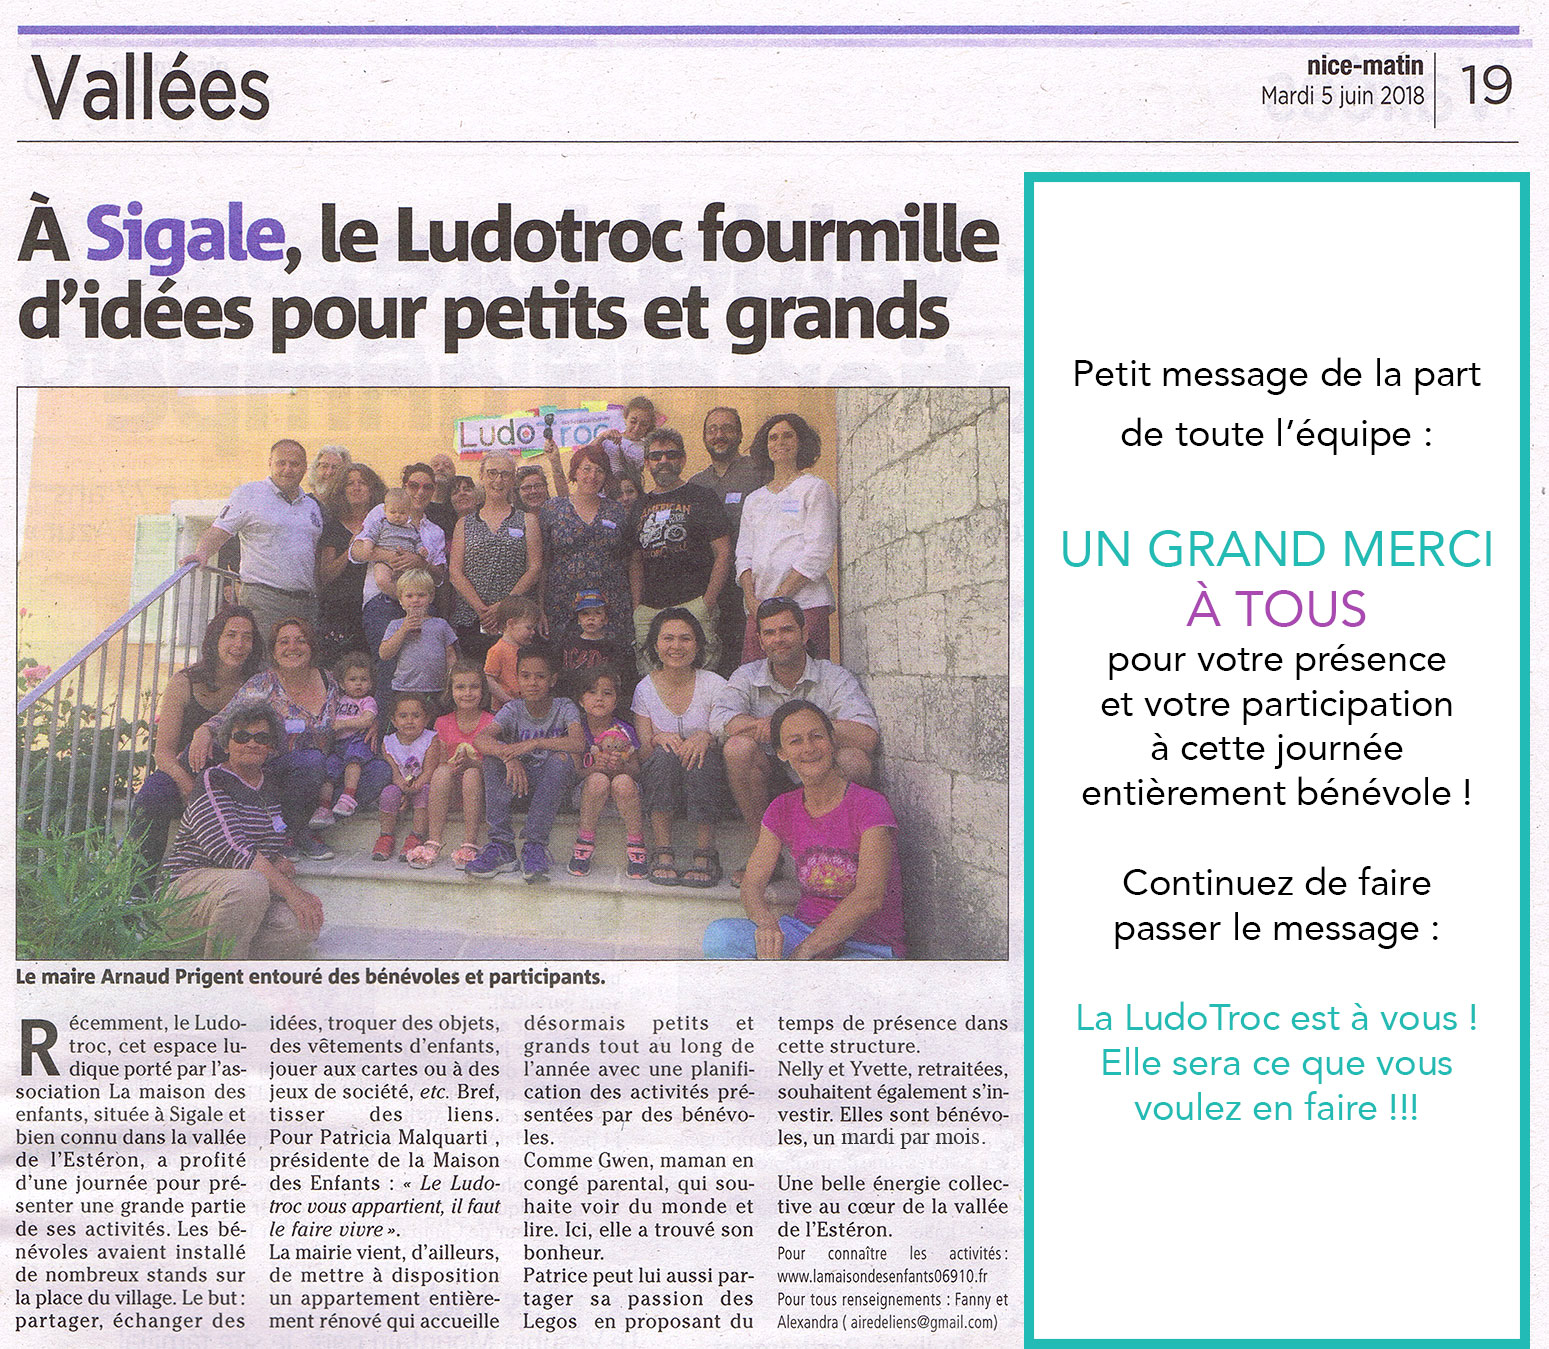 article inauguration ludotroc